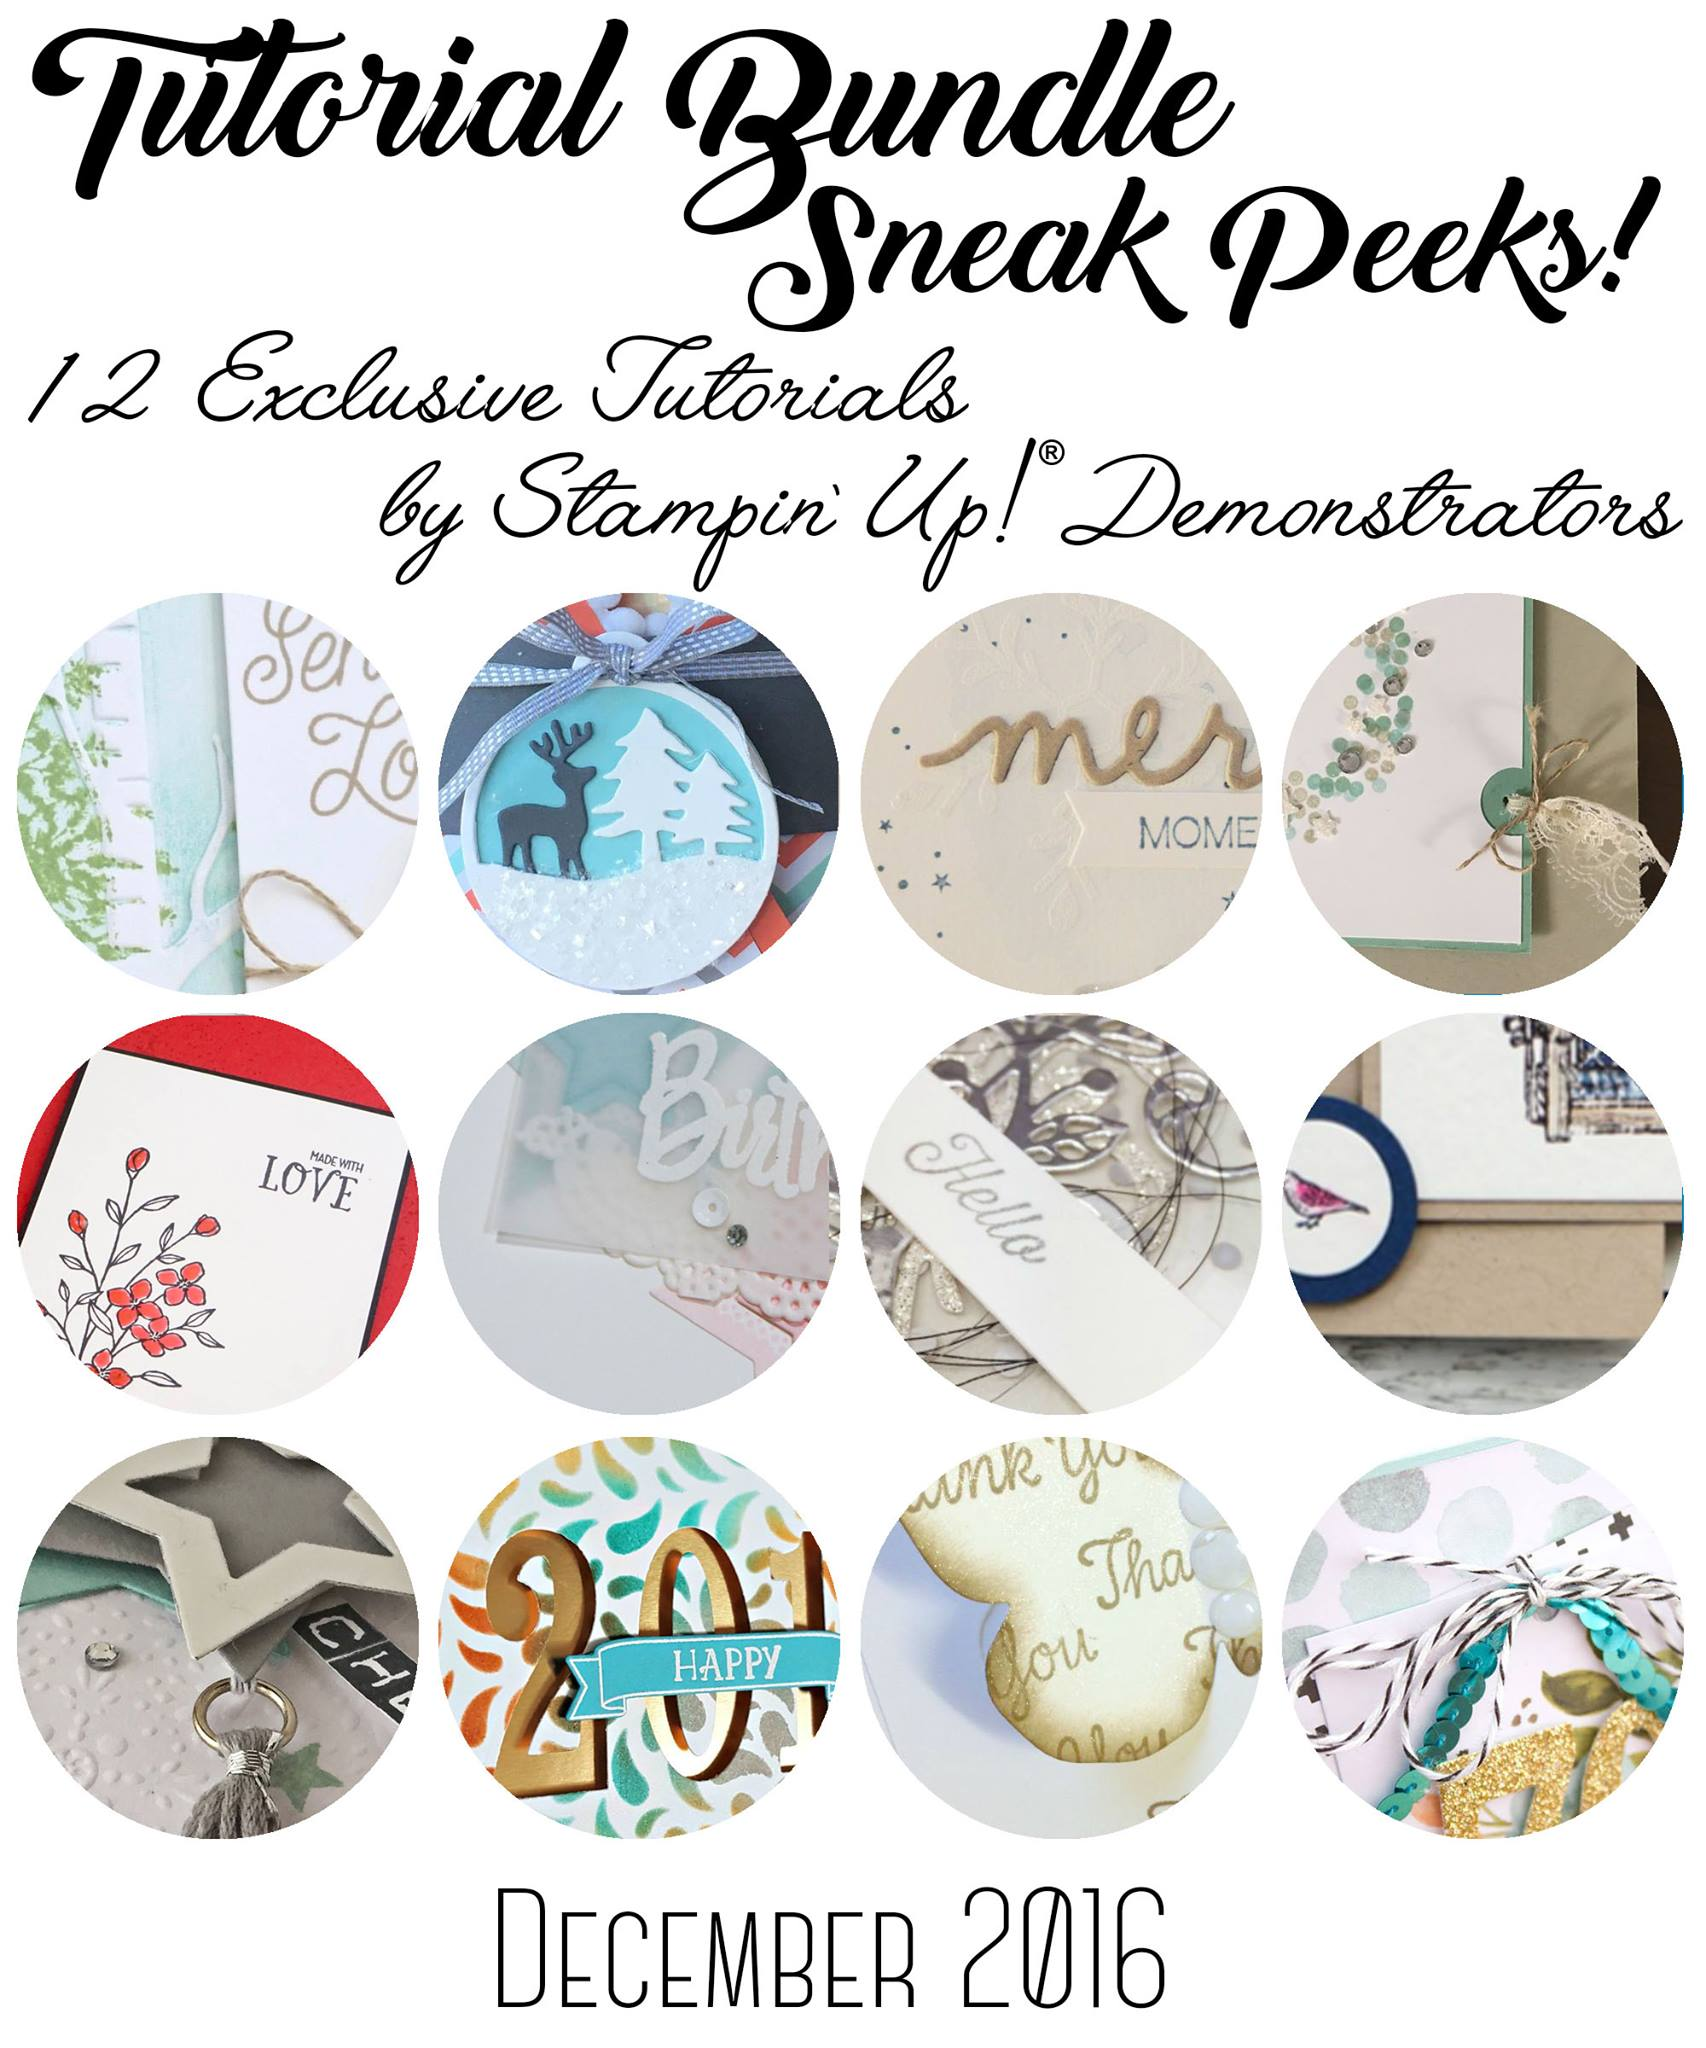 December Exclusive Tutorial, Stampin' Up!